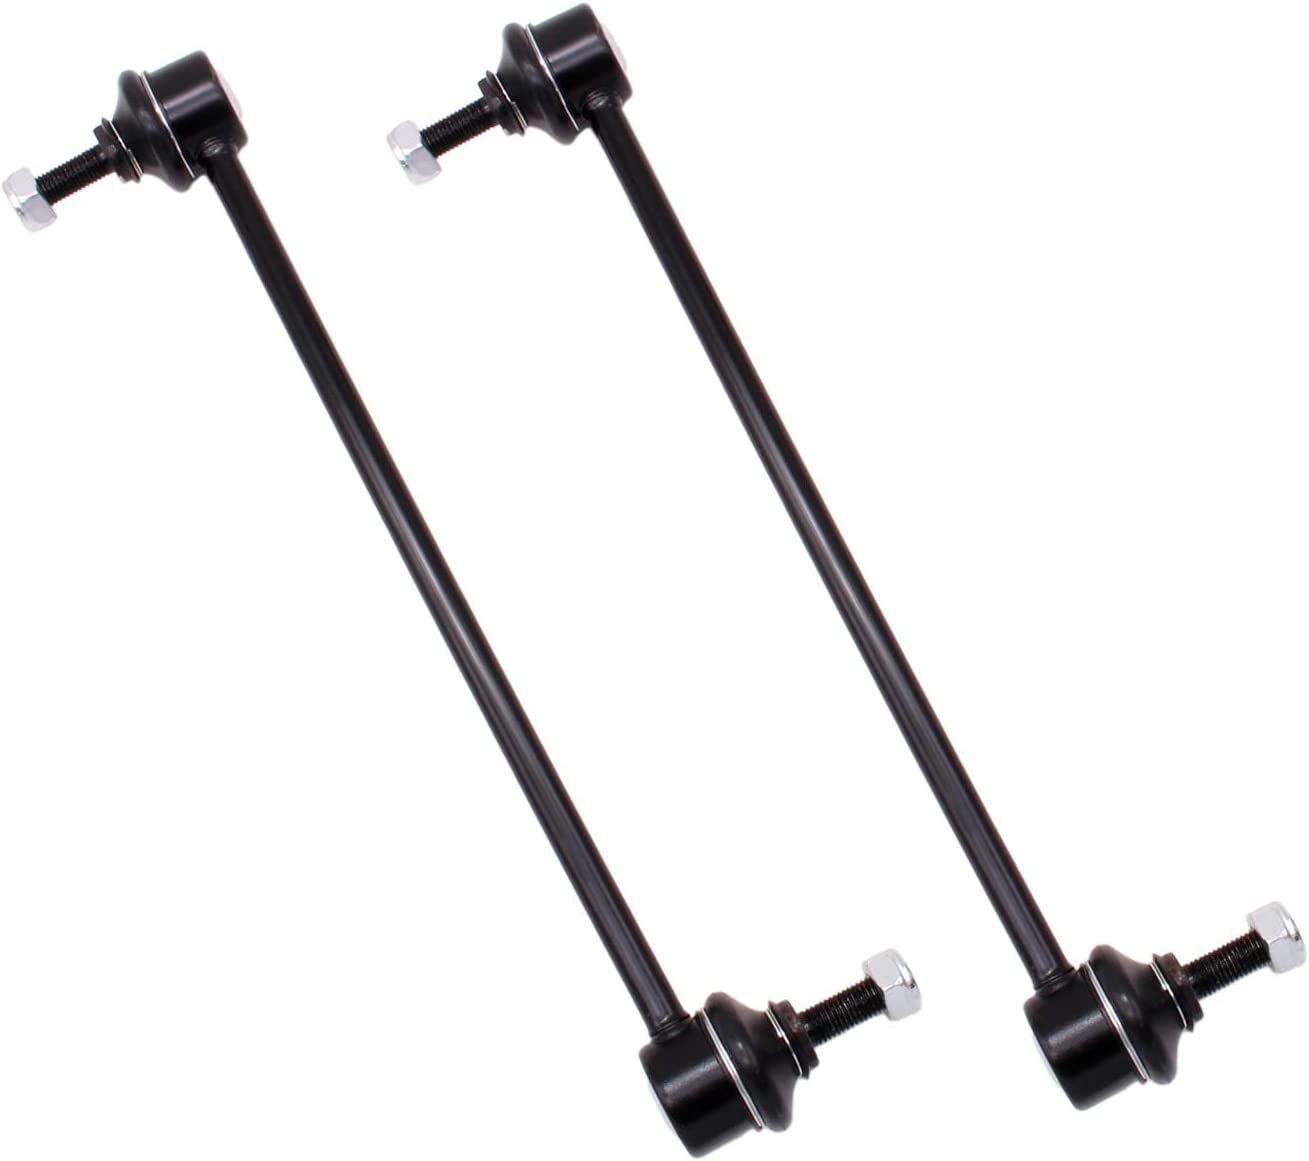 Piar Front Left And Right Stabiliser Anti Roll Bar Drop Links for Focus Mk2 Mk3 C-Max 1223792 1762149 RICH CAR